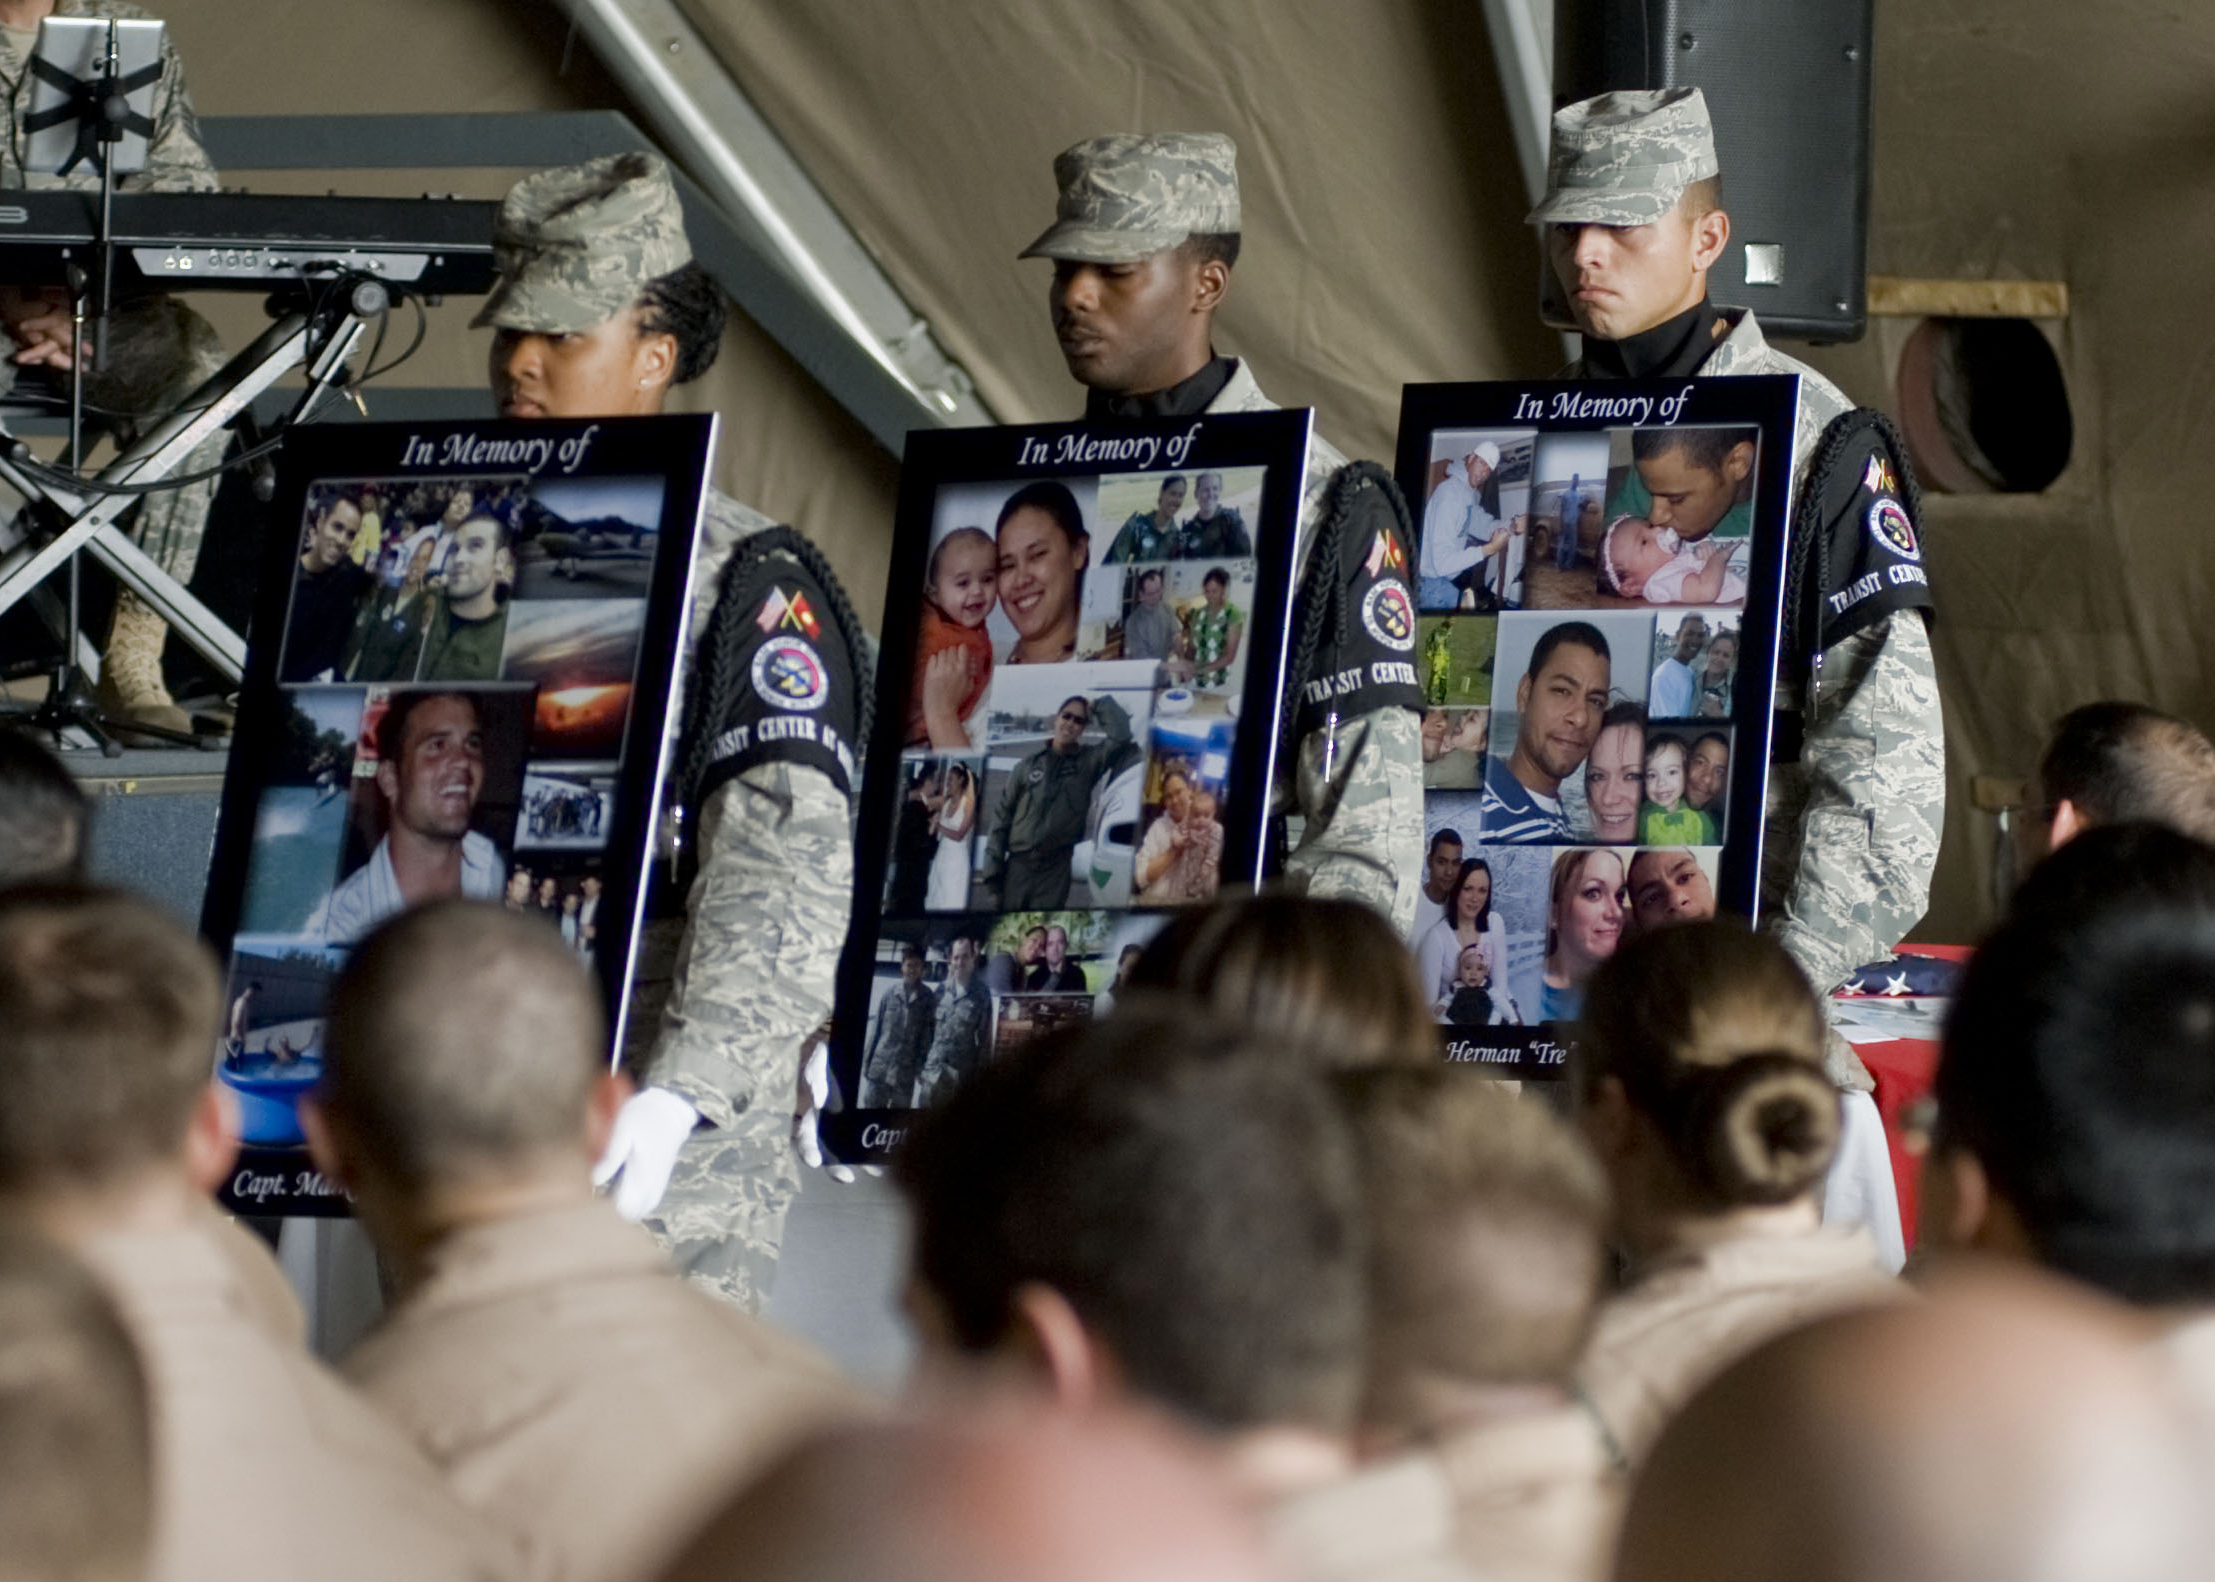 An honor guard carries photos of the KC-135 crew members during a memorial service at Manas six days after the crash.